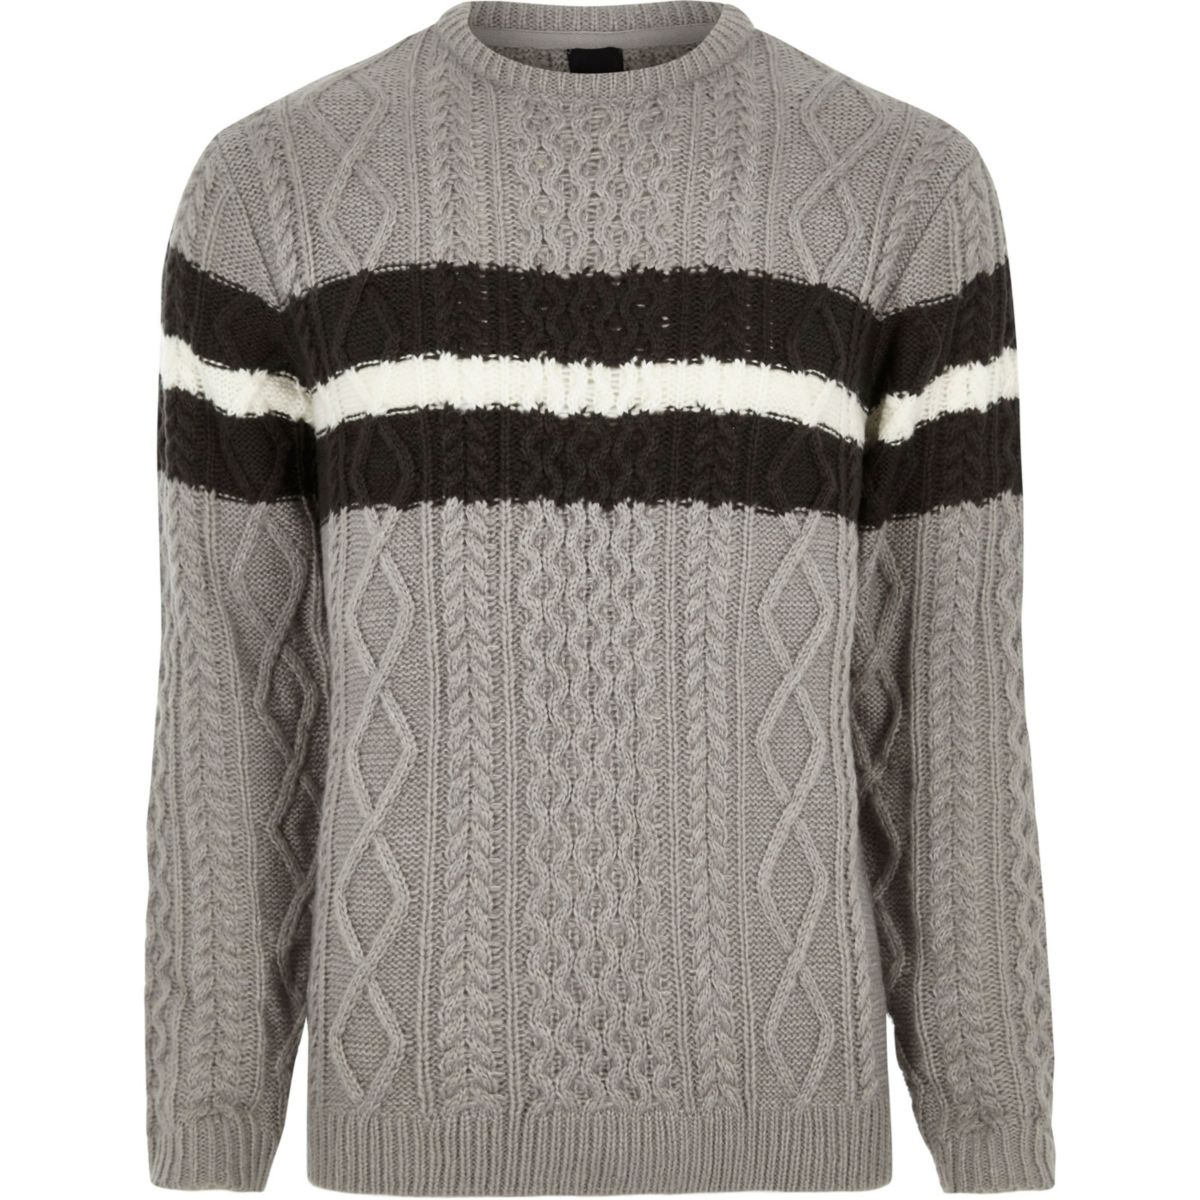 Big and Tall grey block cable knit jumper